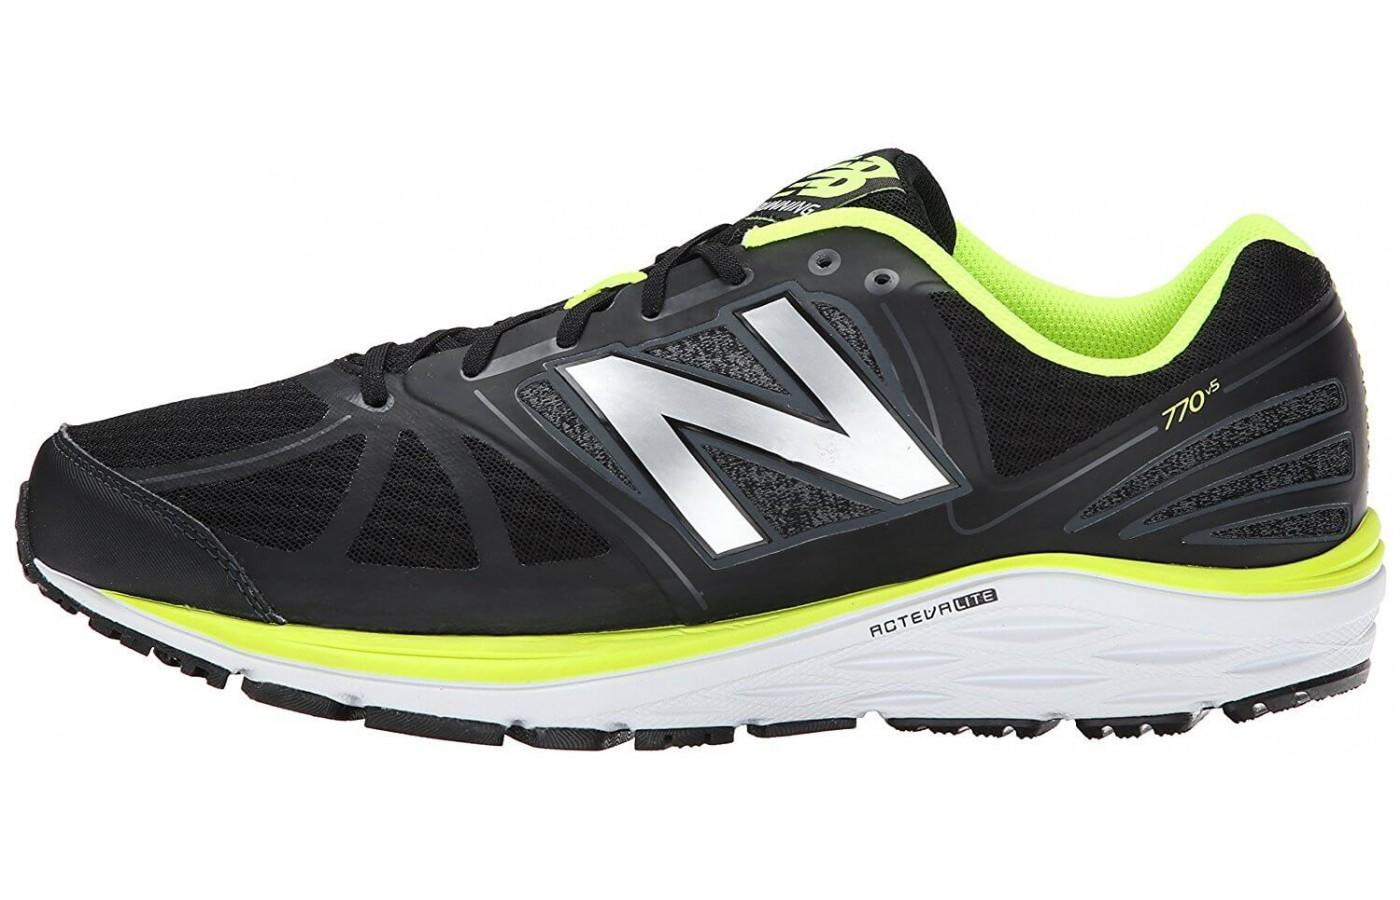 The New Balance 770 v5 features ACTEVA Lite and REVlite foam throughout the midsole.